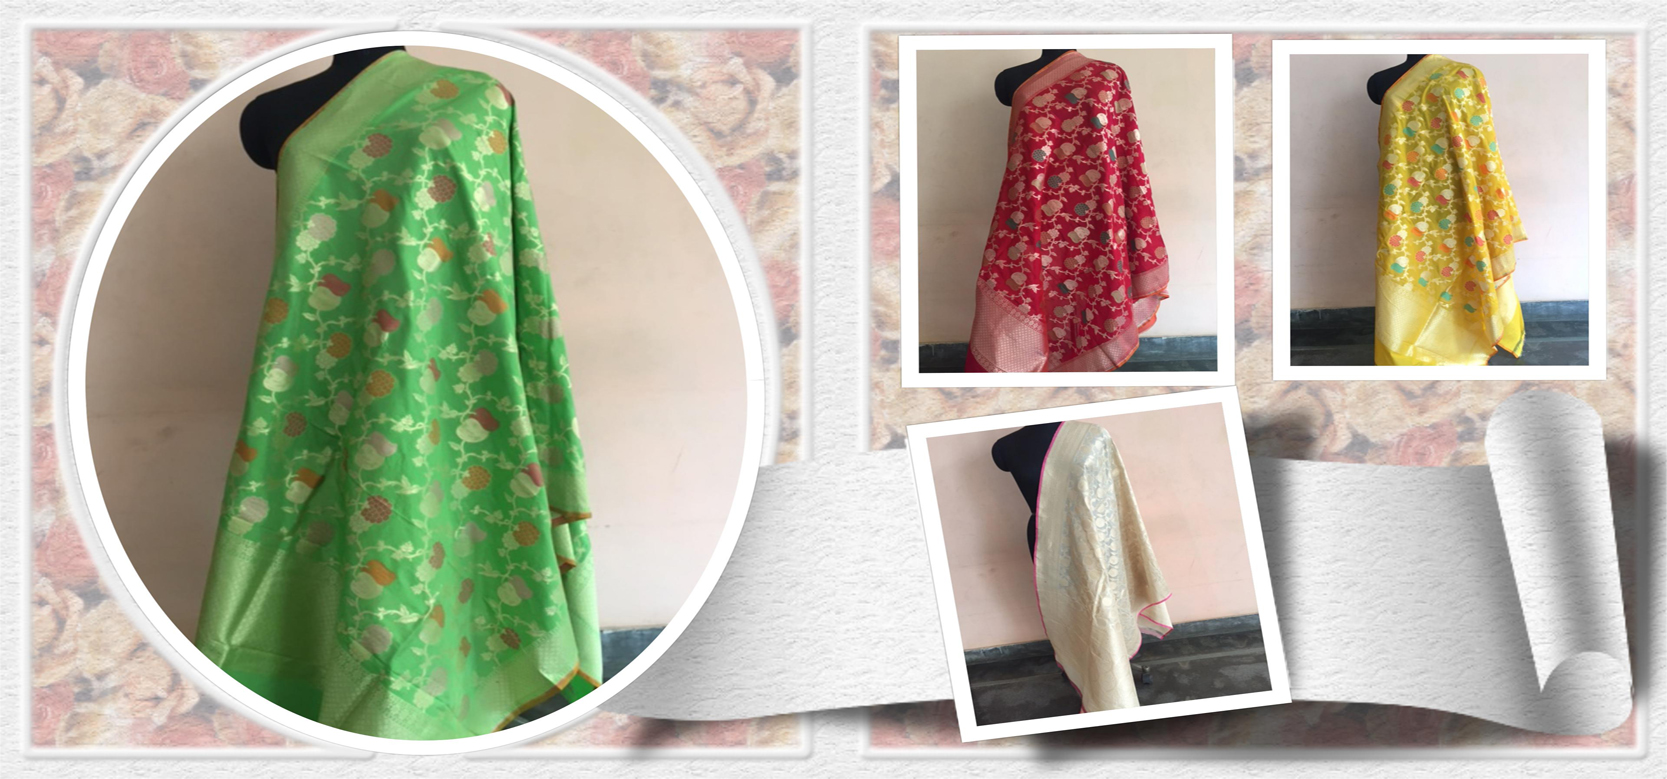 About Silkways Dupatta Collections